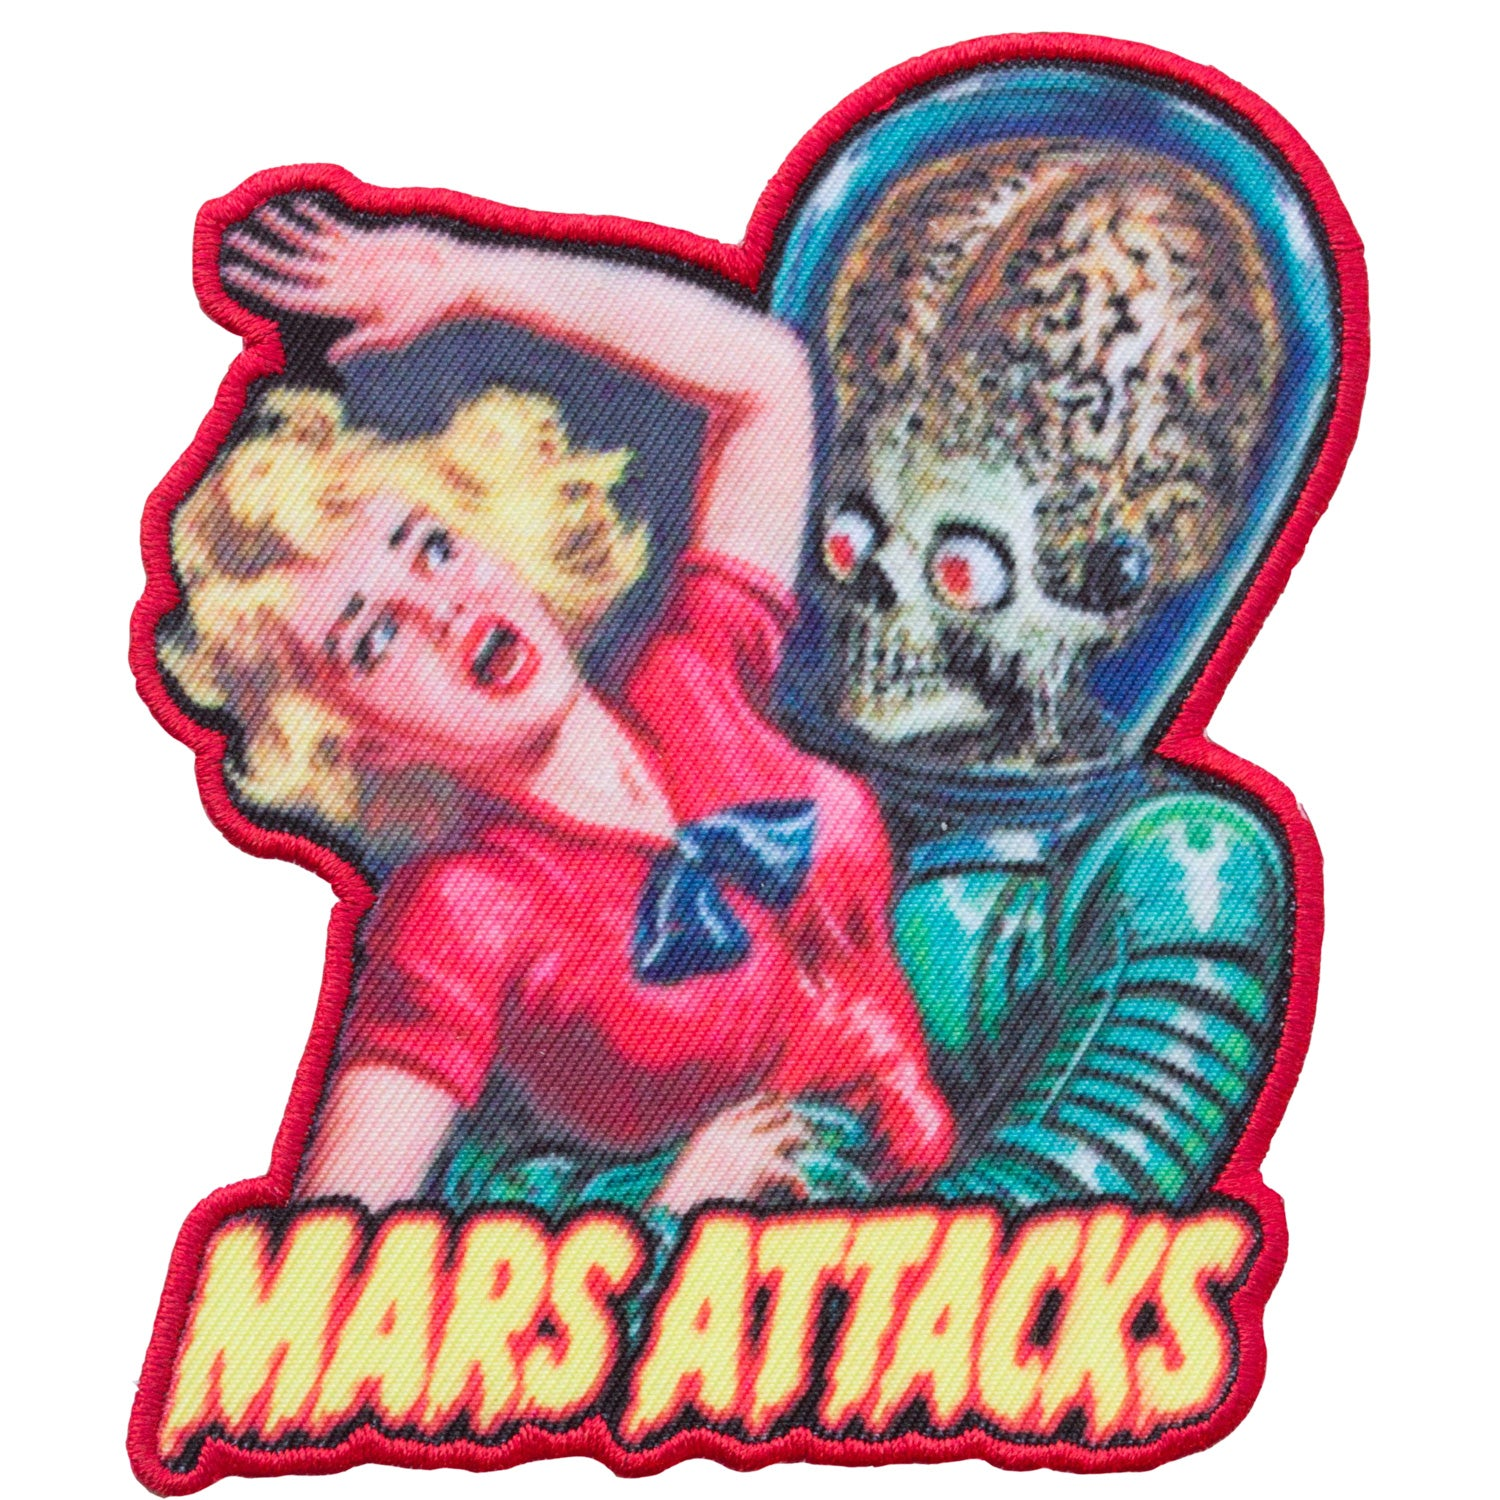 Mars Needs Blondes Mars Attacks Patch